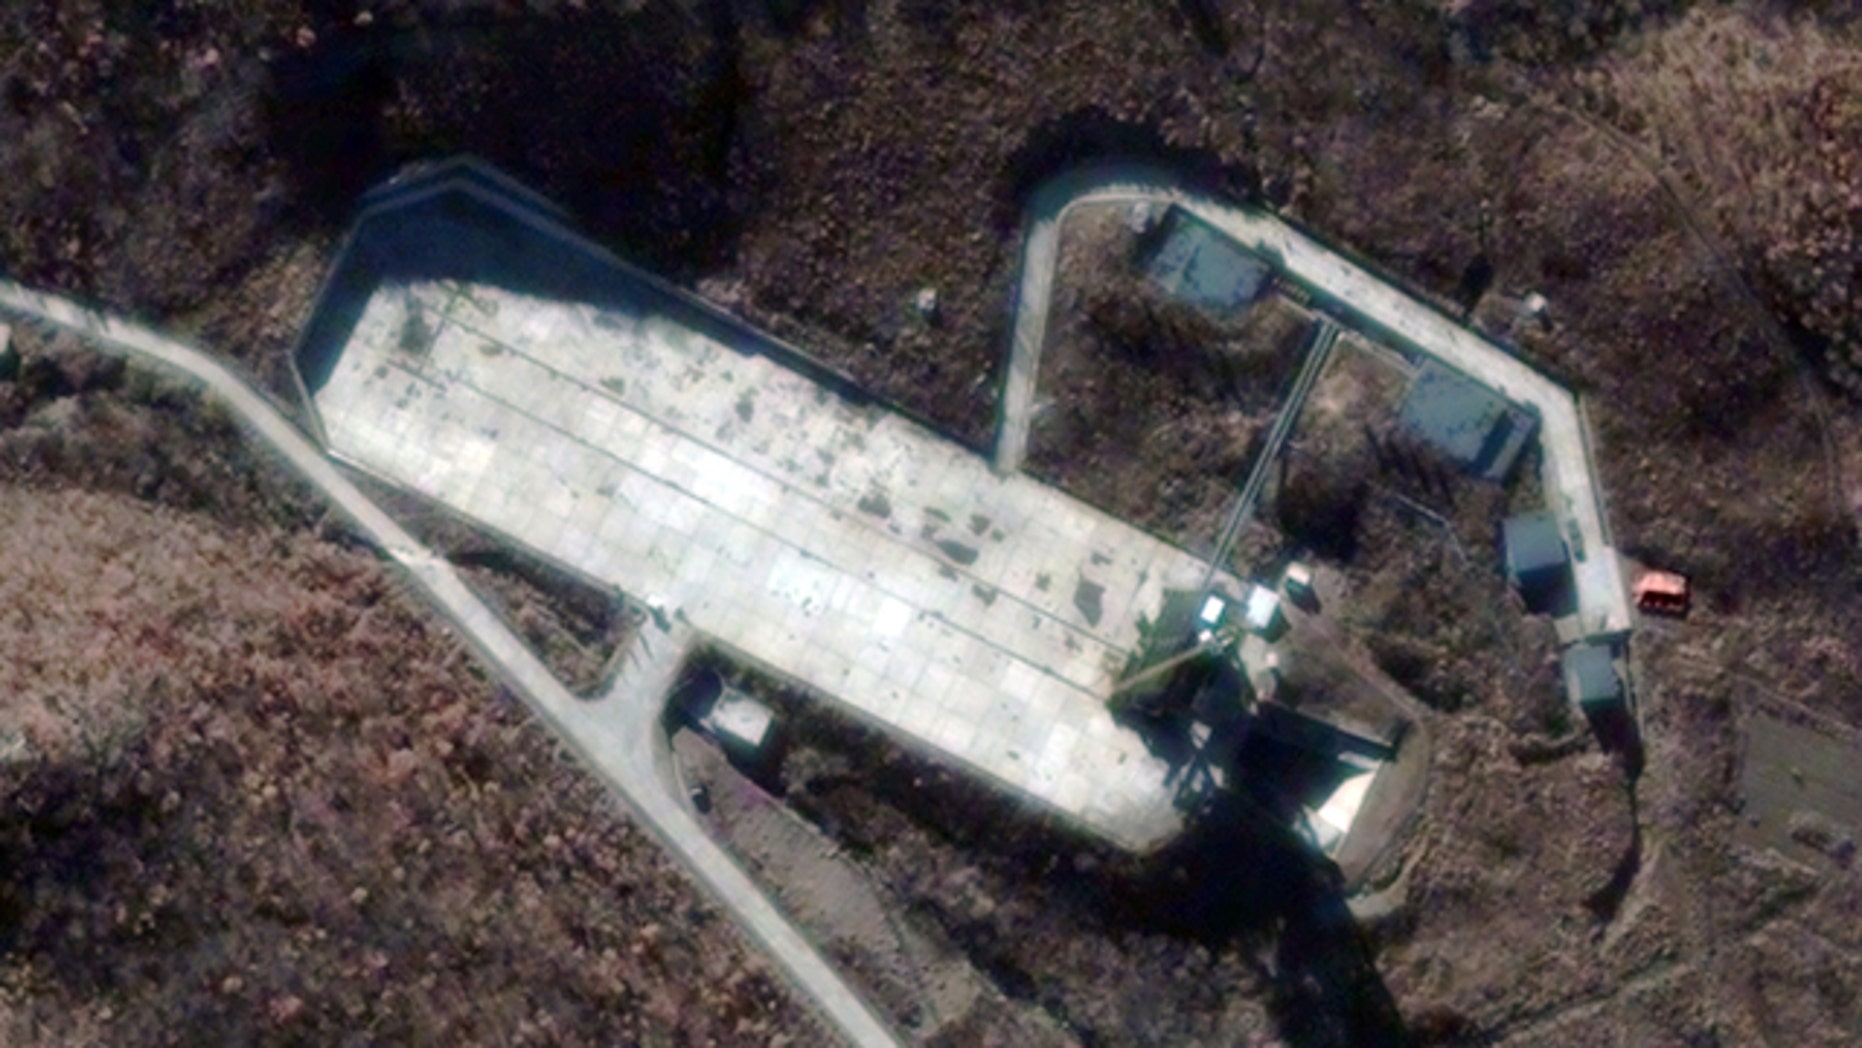 Nov. 26, 2012: This satellite image shows the Sohae Satellite Launch Station in Cholsan County, North Pyongan Province, North Korea.